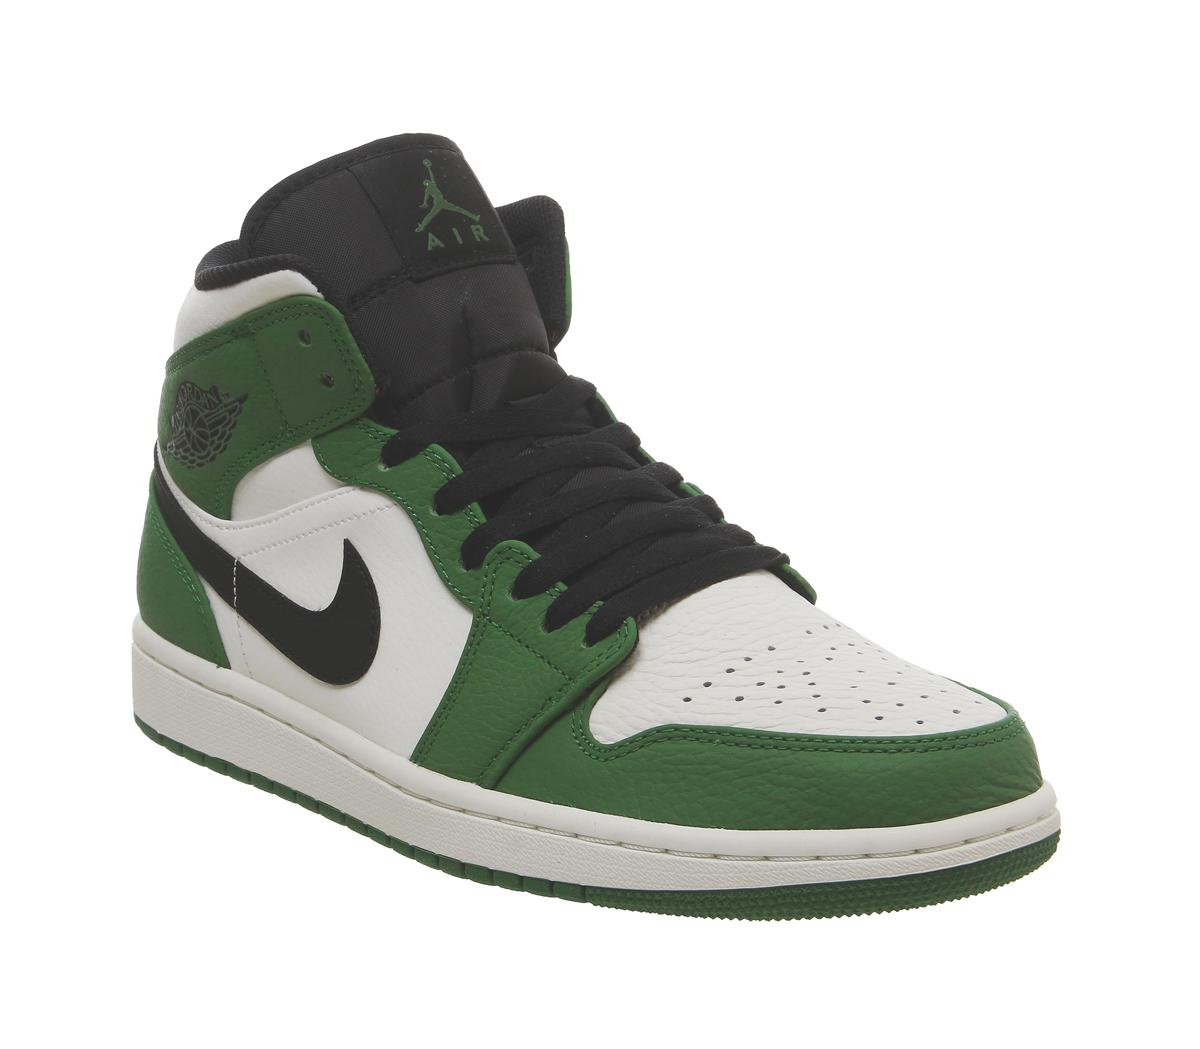 best website 92c7b 36fc2 Lyst - Nike Air 1 Mid Trainers in Green for Men